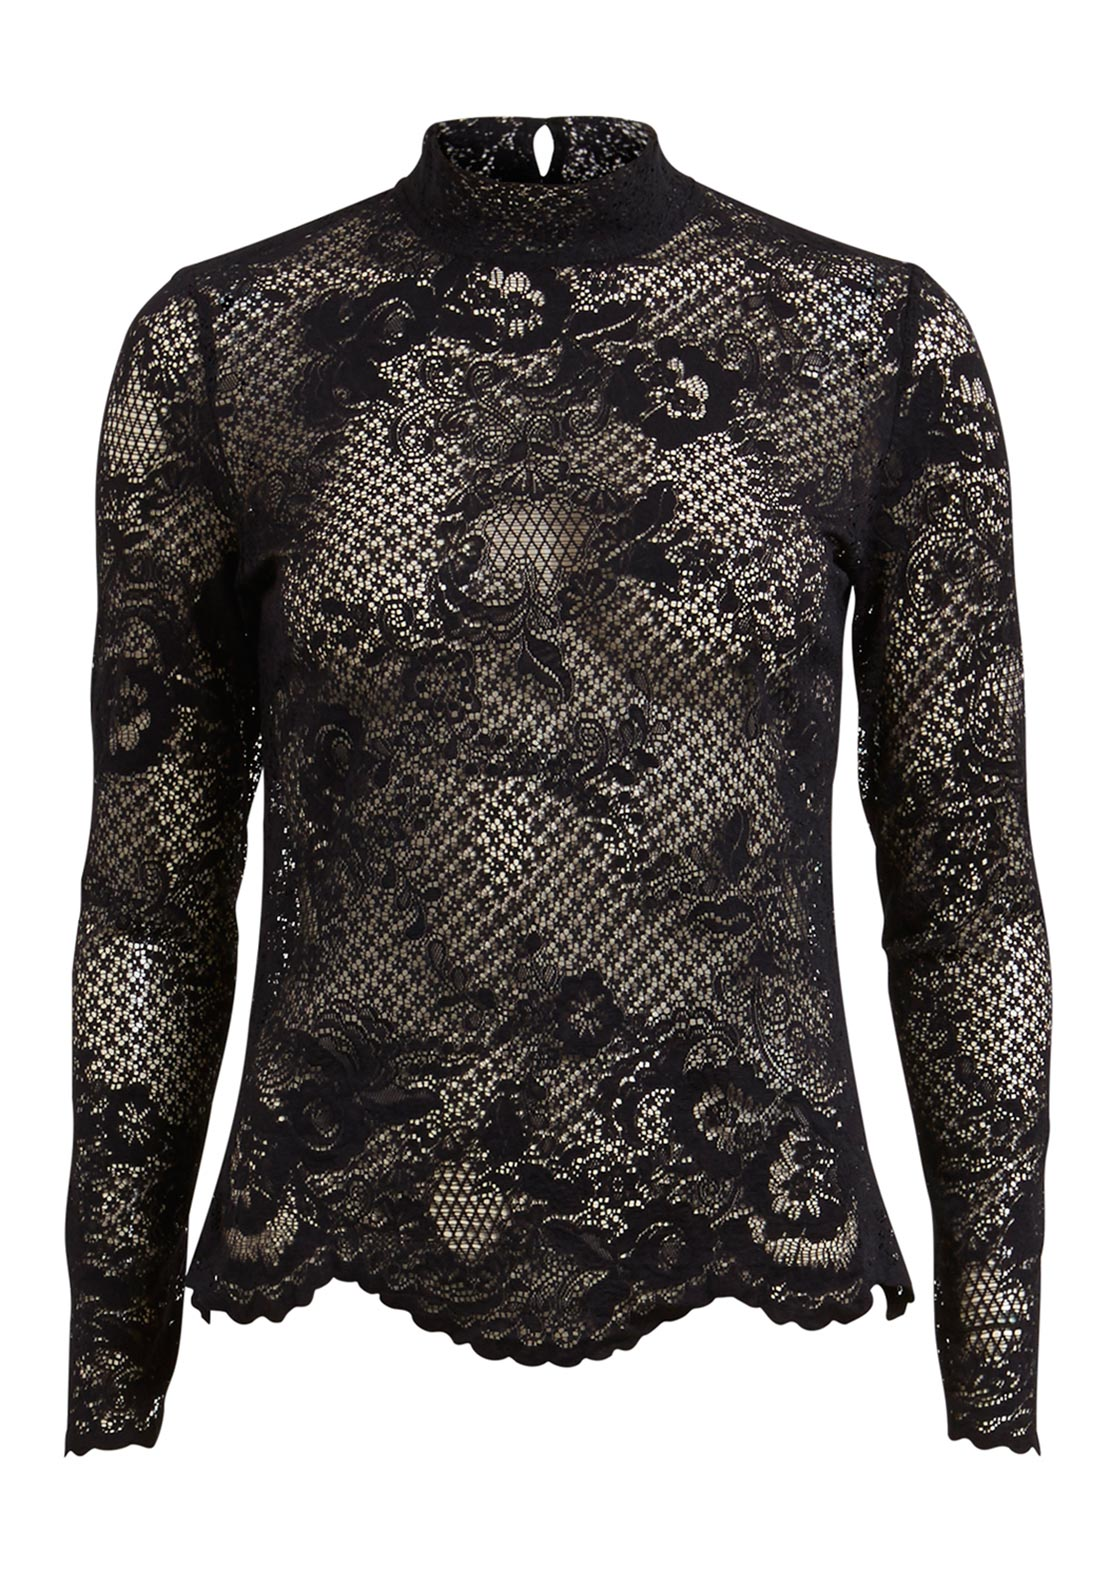 Vila Loras Lace High Neck Top, Black